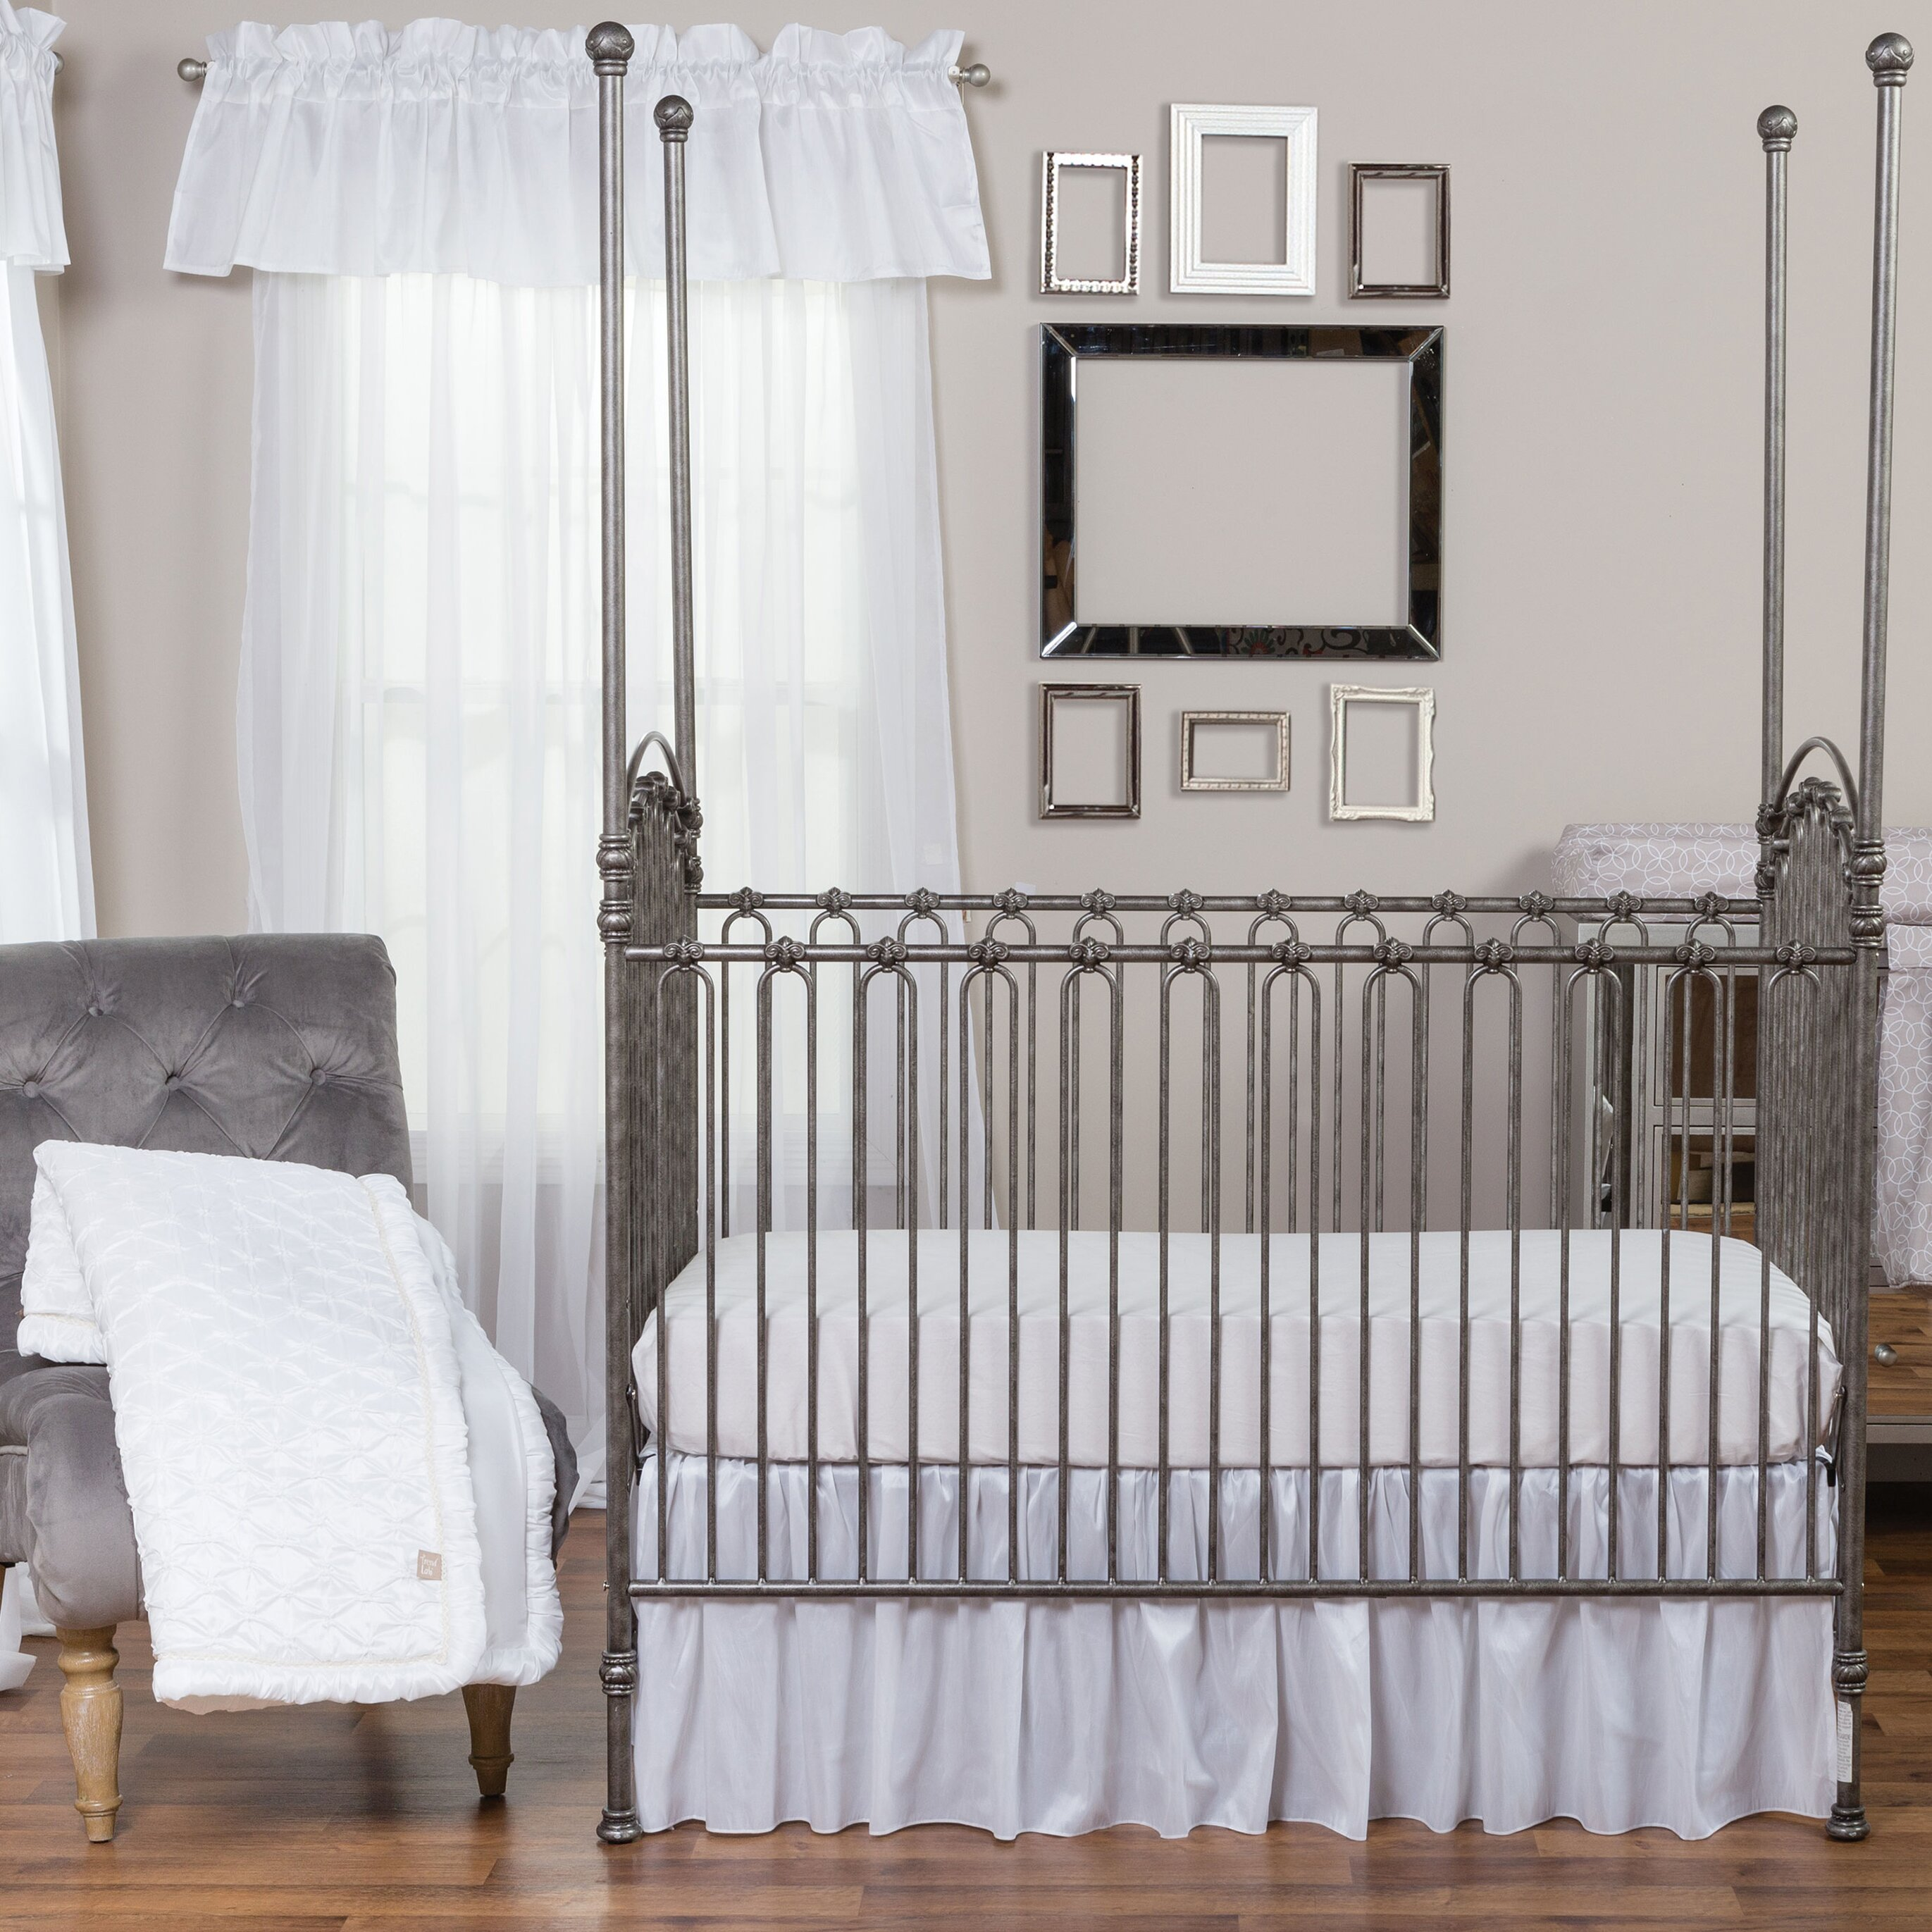 Harriet Bee Rollins 3 Piece Crib Bedding Set: Trend Lab Marshmallow 3 Piece Crib Bedding Set & Reviews